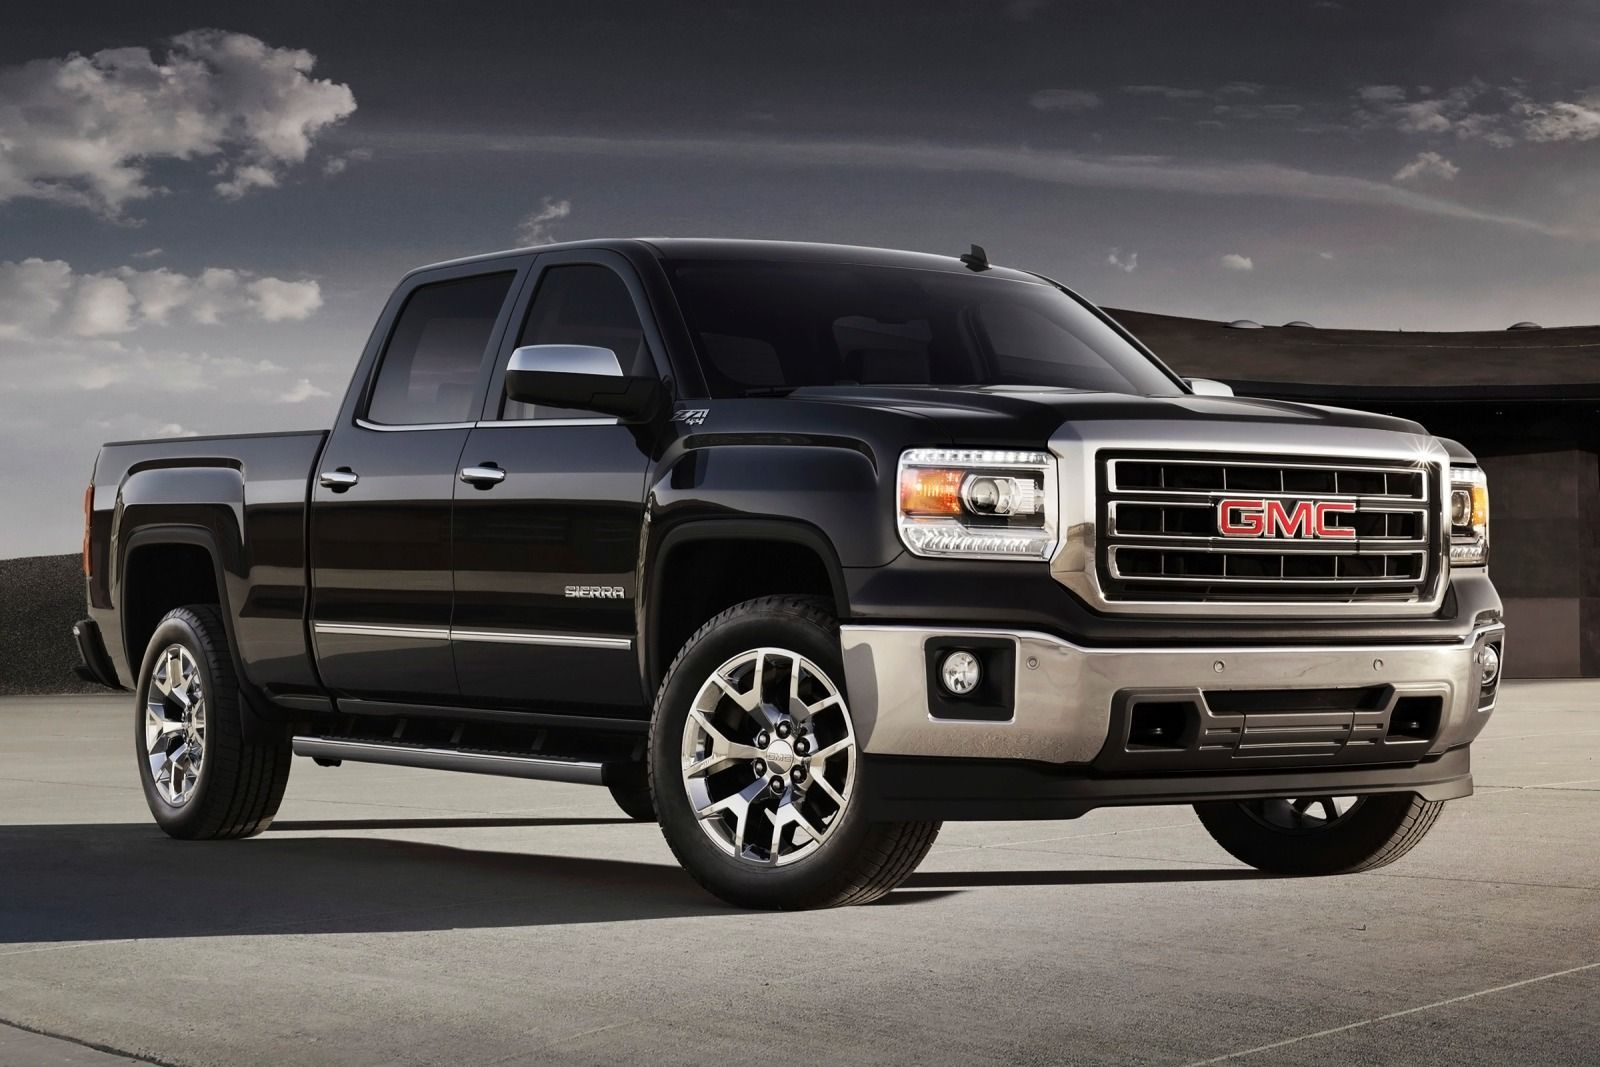 2015 gmc sierra 1500 review and price for your very good appearance you now